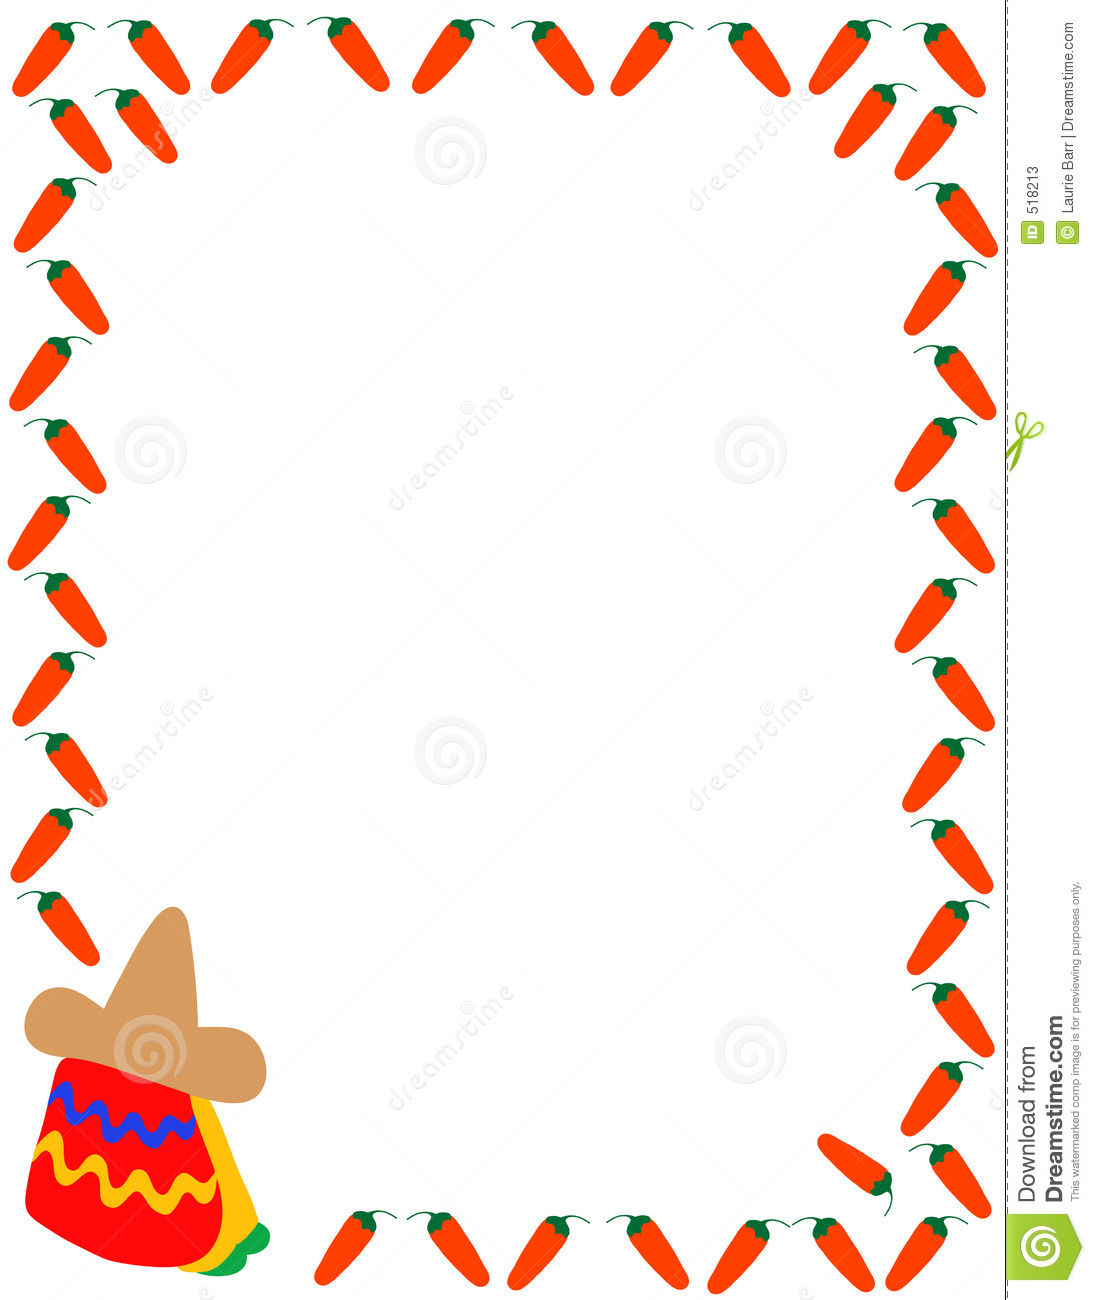 1095x1300 Taco Clipart Mexican Party